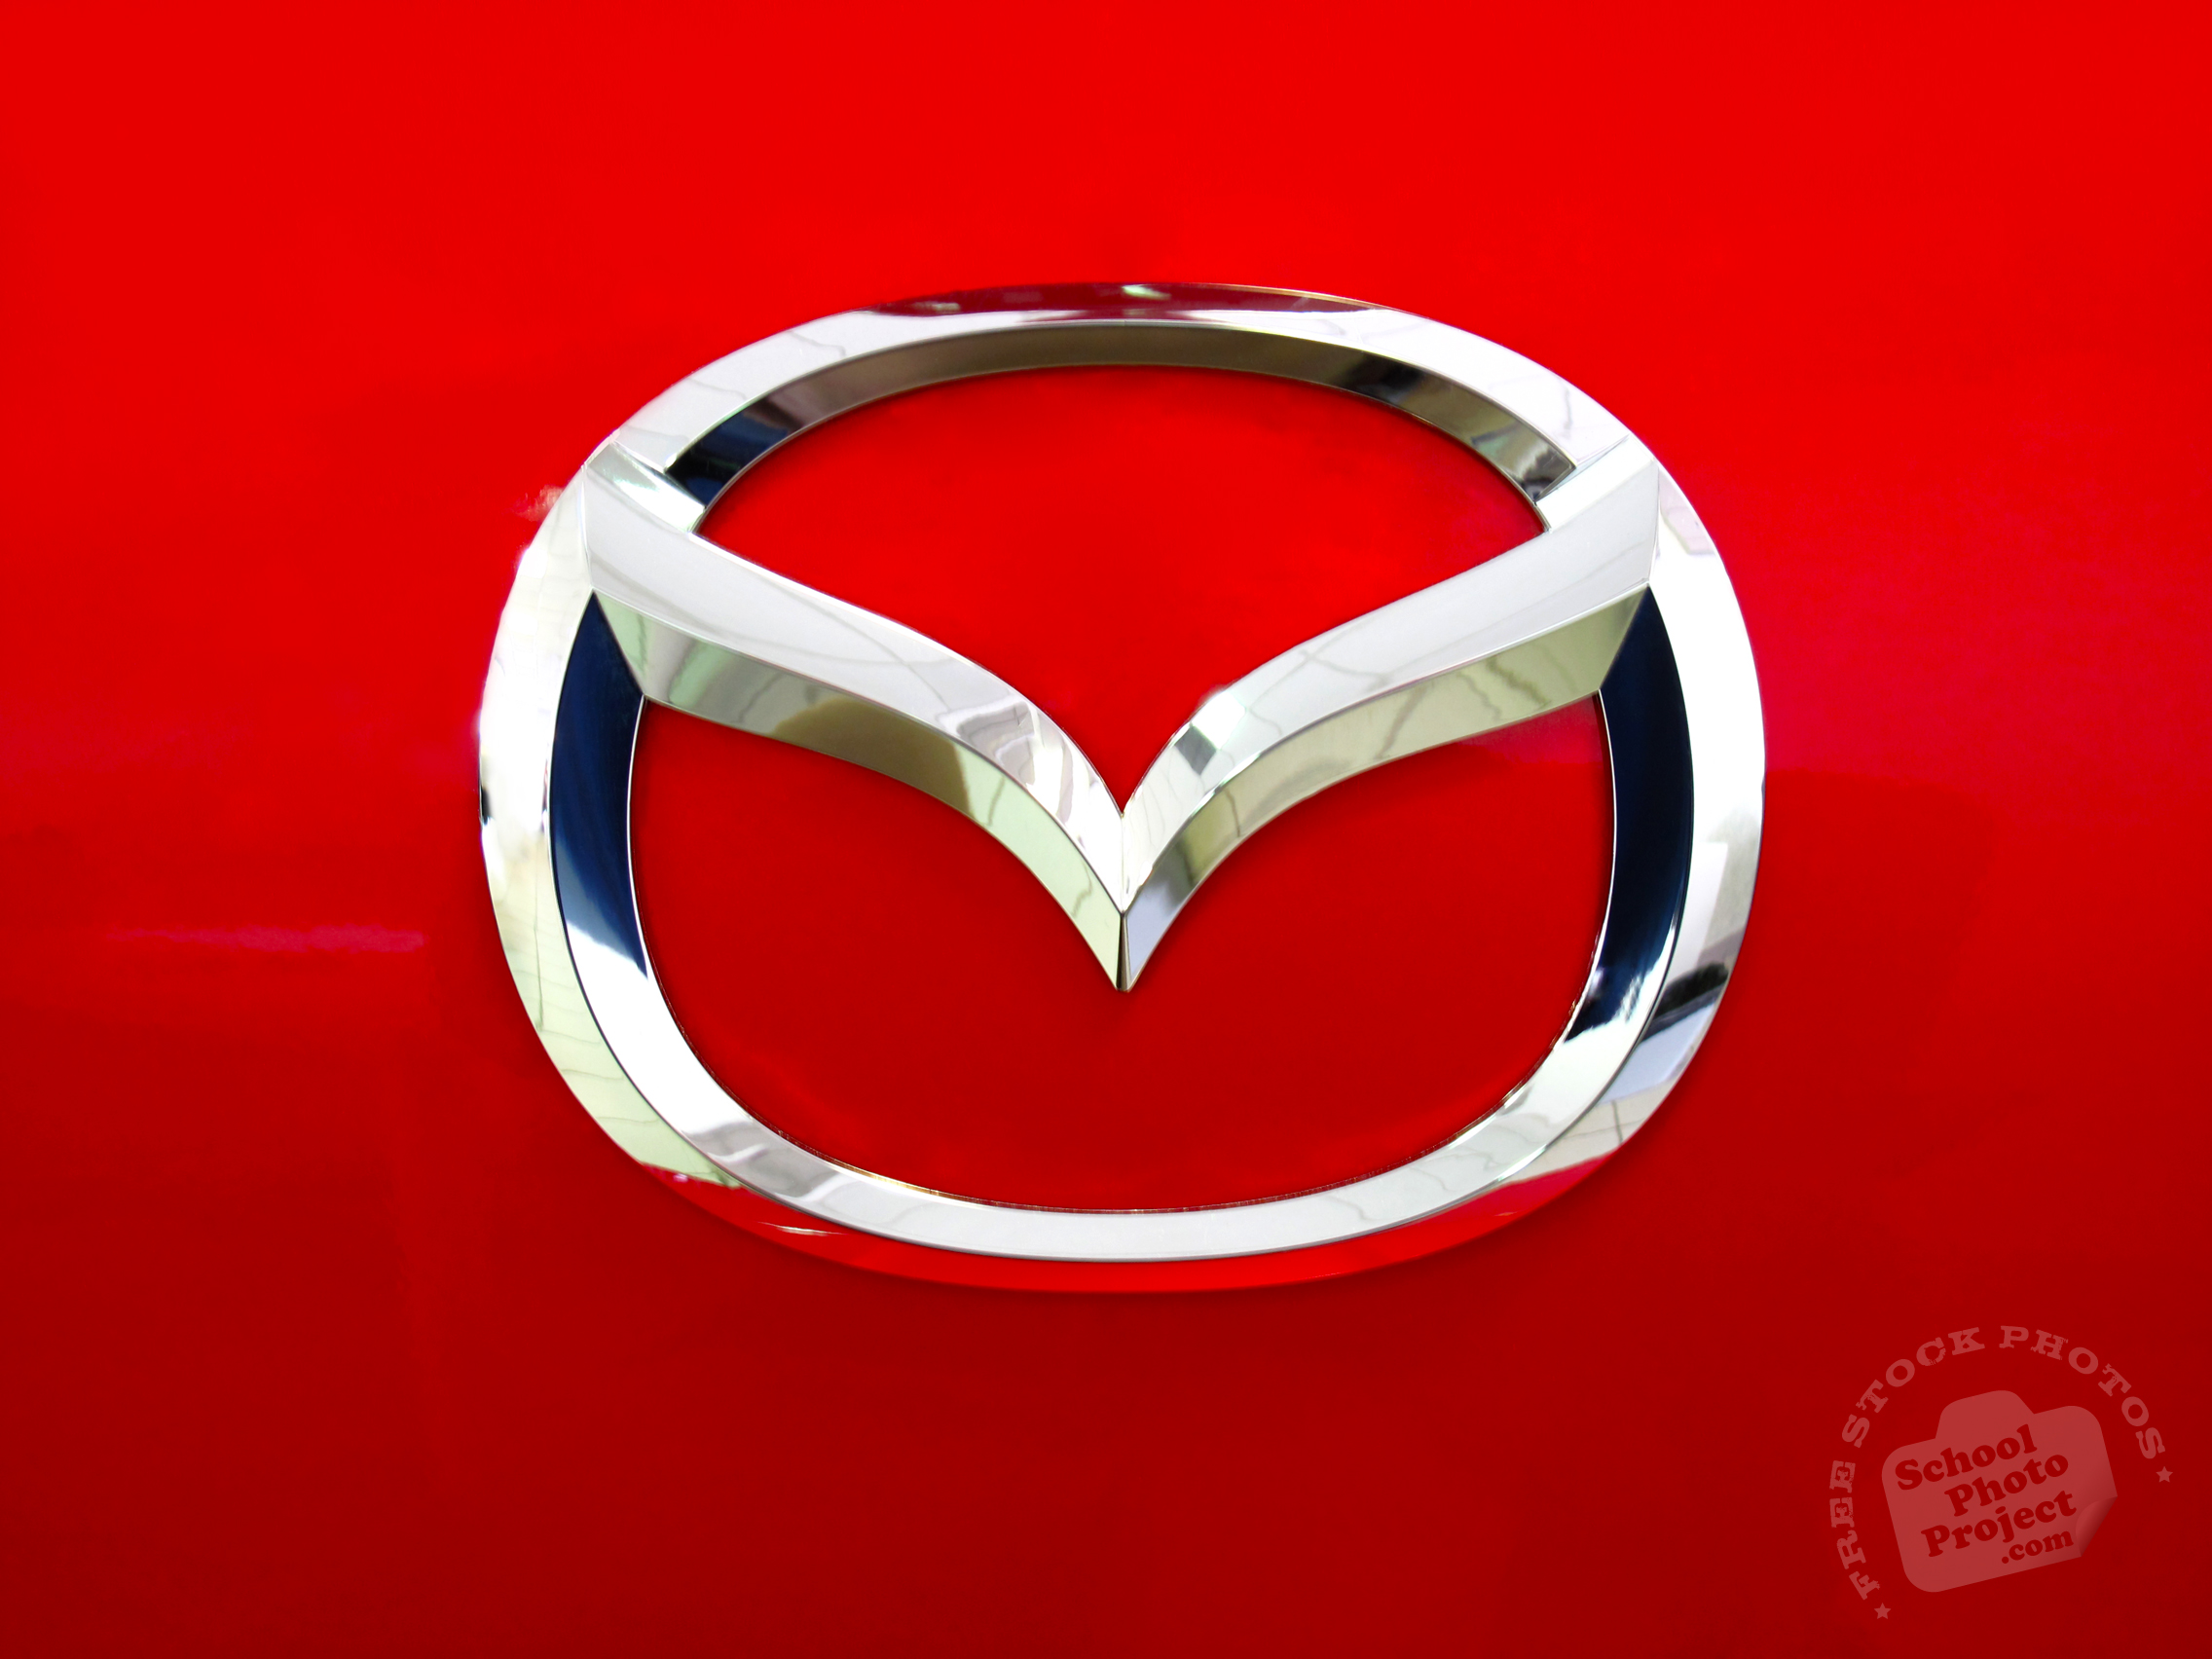 Project Cars Wallpaper Red Mazda Logo Free Stock Photo Image Picture Red Mazda